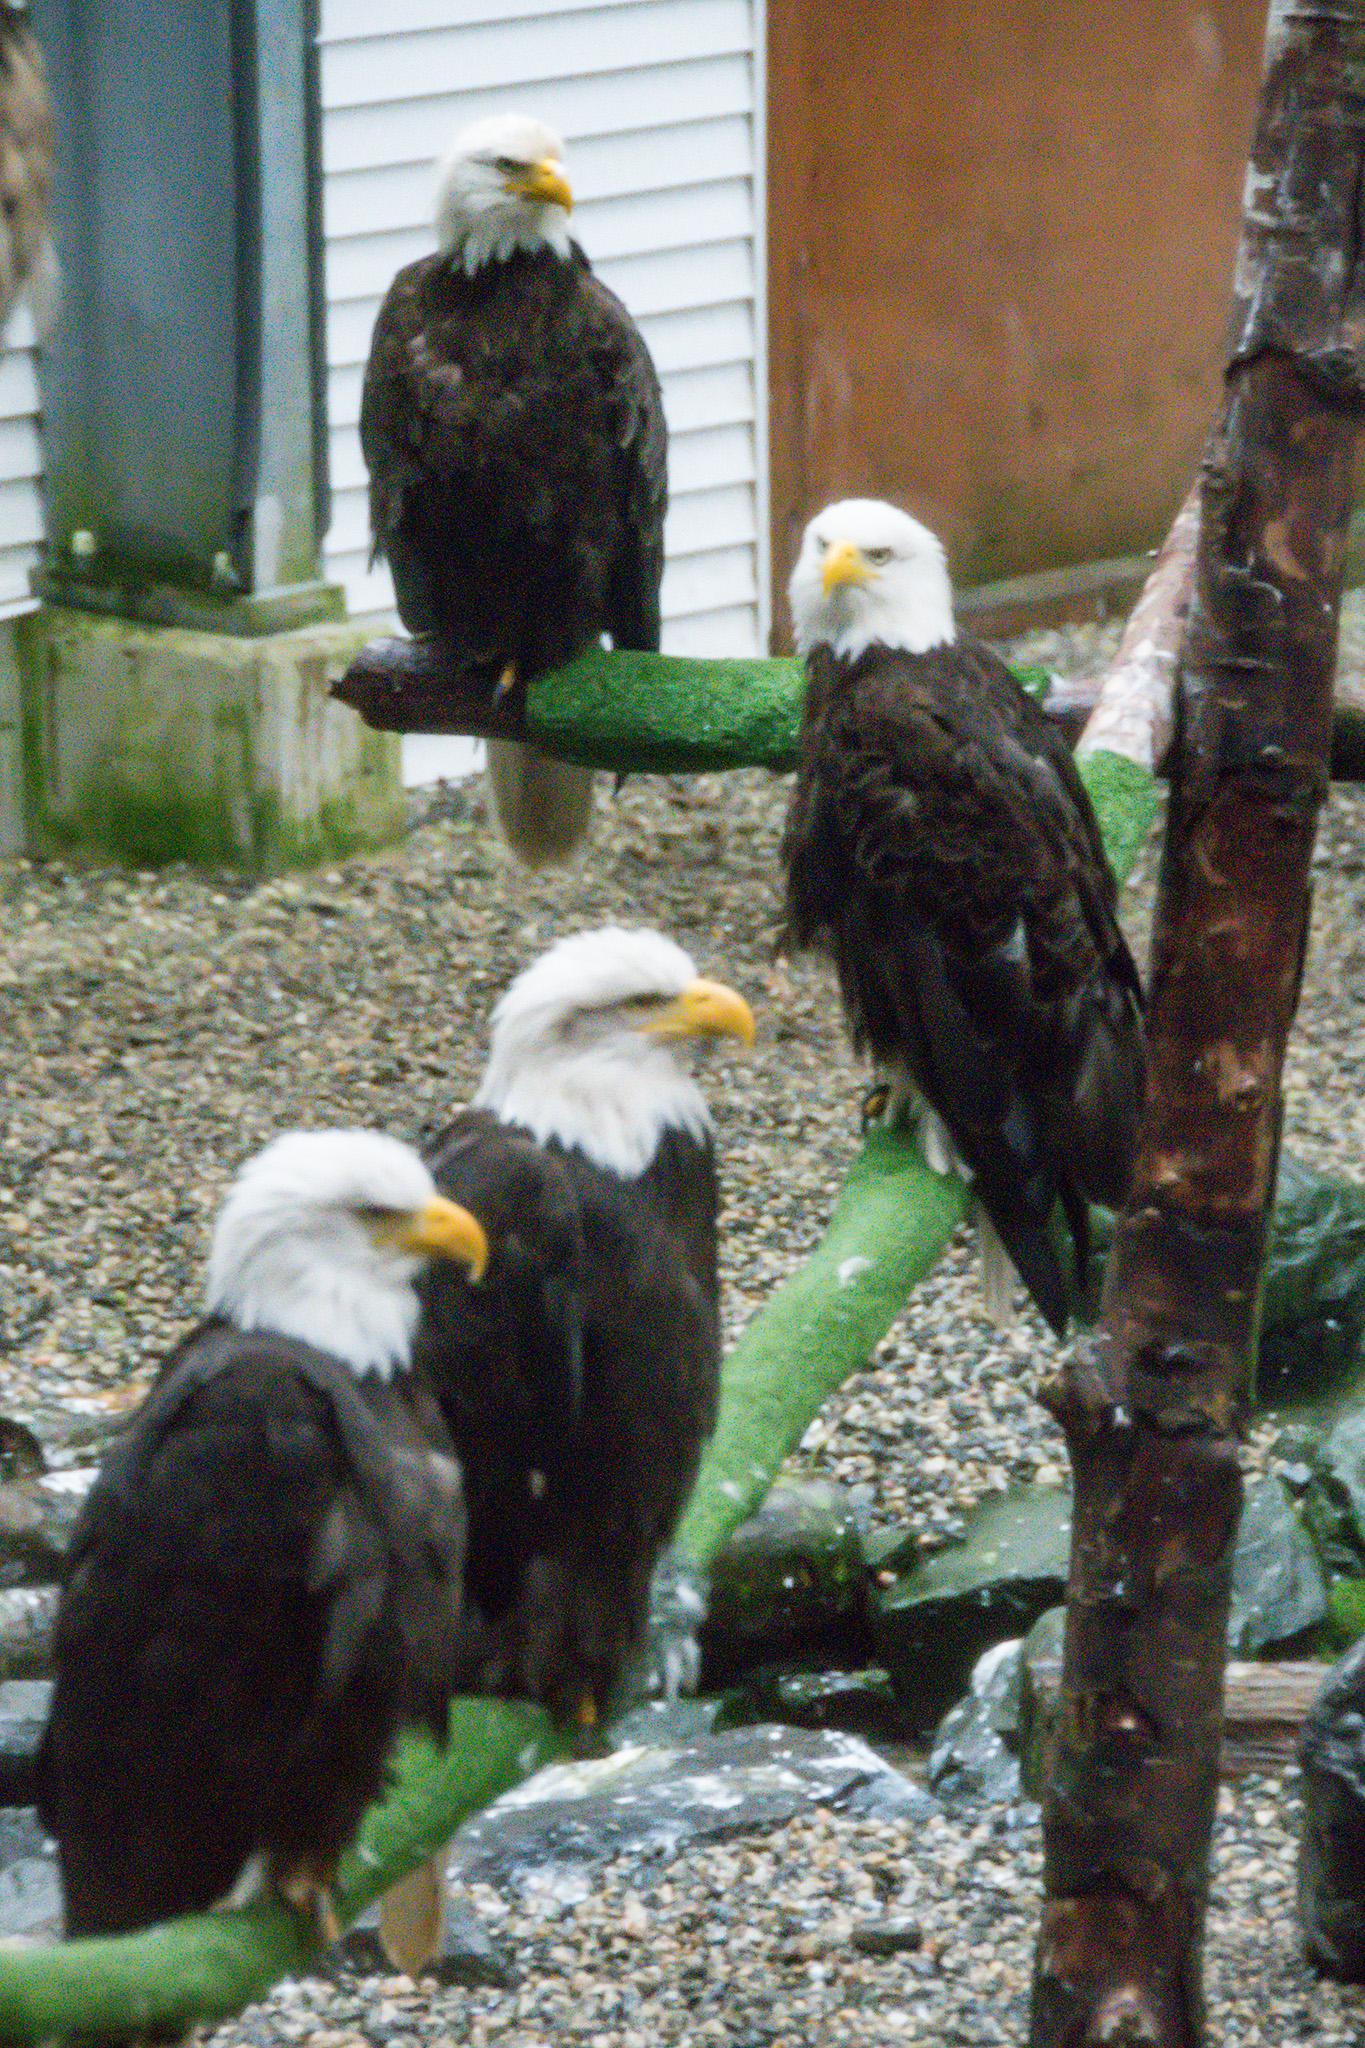 Dozens of eagles live in the Flight Training Center for a short time after being treated to strengthen their wings and prepare for life outside again. The windows are all soundproof and one way glass so birds don't get habituated to people. The roof is open allowing them to experience the elements and rehabilitators provide food in a way that allows them to hunt and seek food rather than being hand fed.